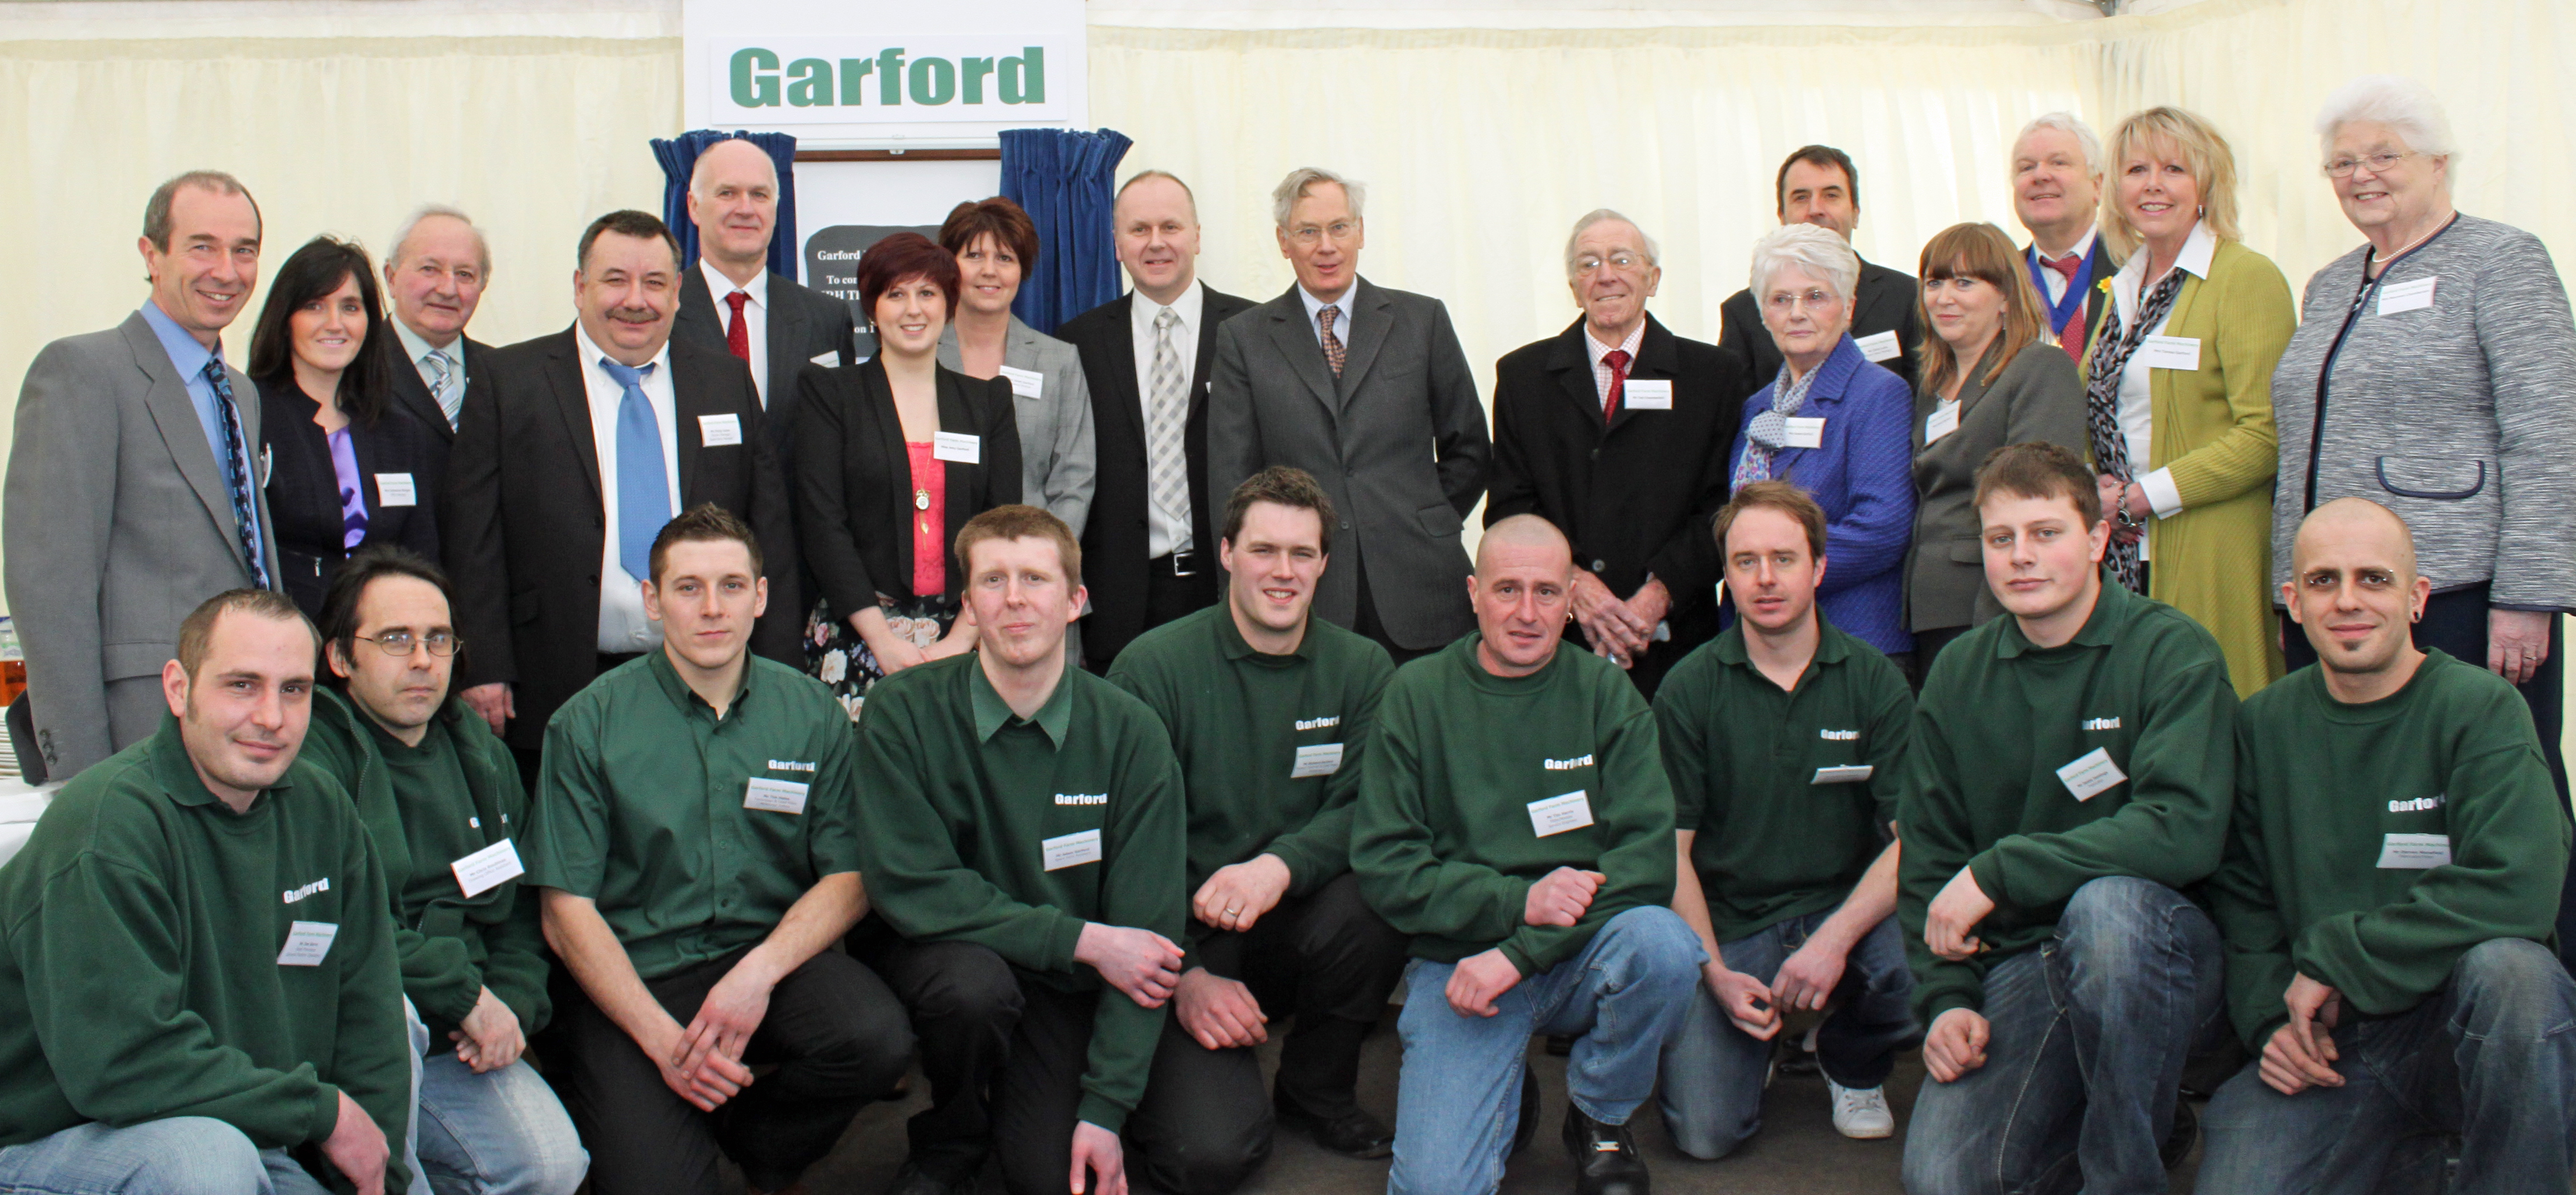 Duke of Gloucester visits Garford Machinery